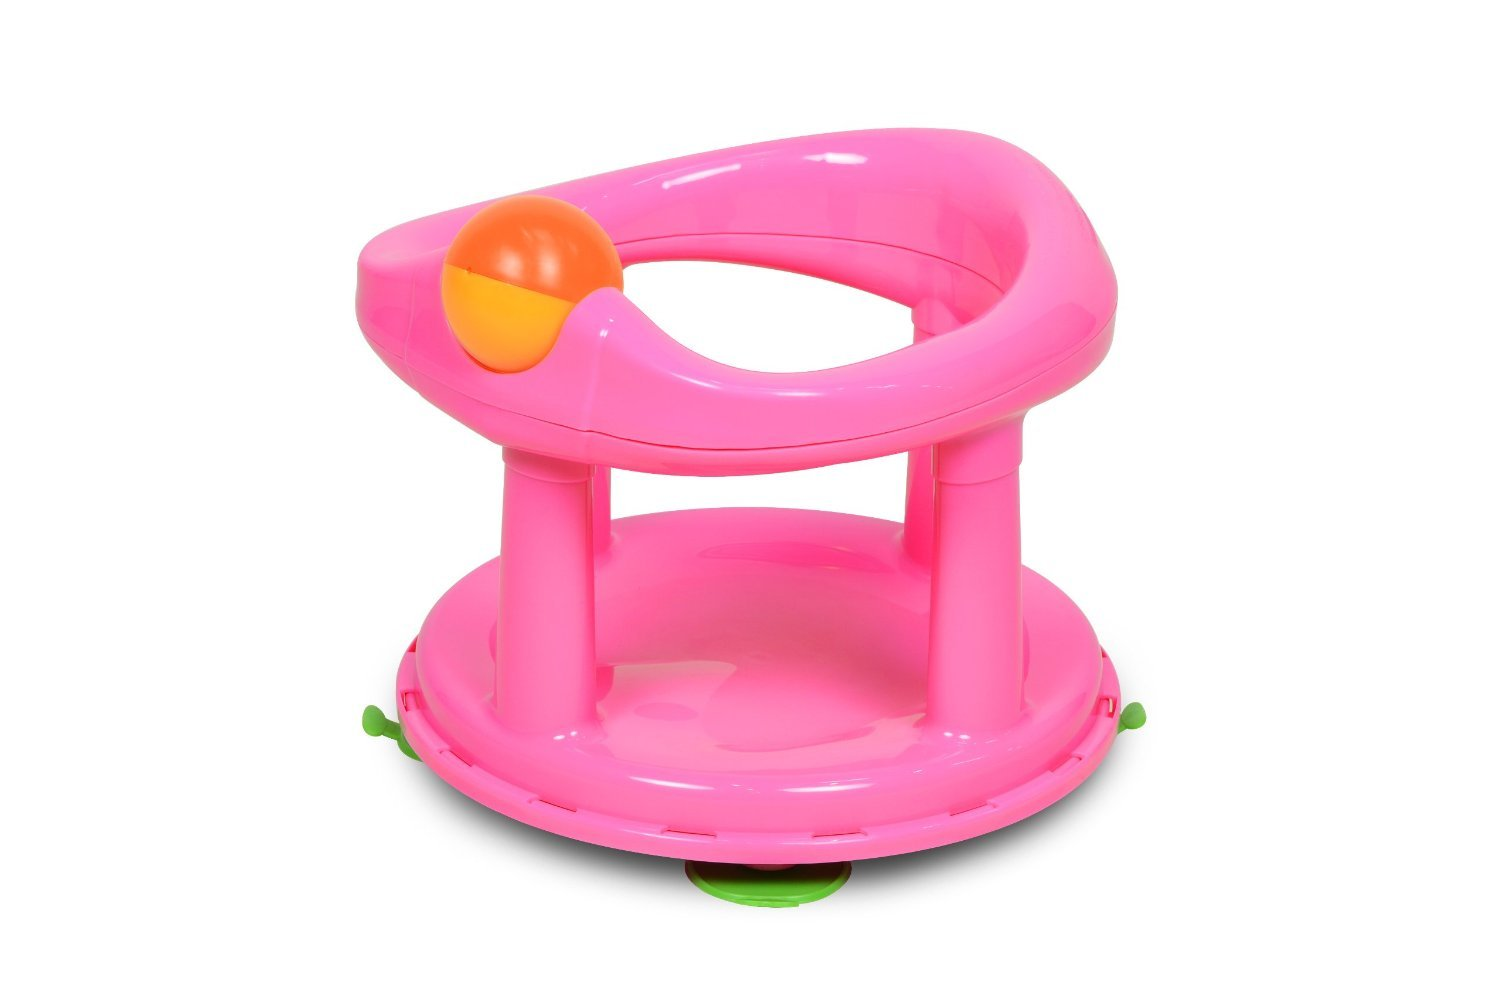 Safety 1st Swivel Bath Seat, Pink: Safety 1st: Amazon.co.uk: Baby